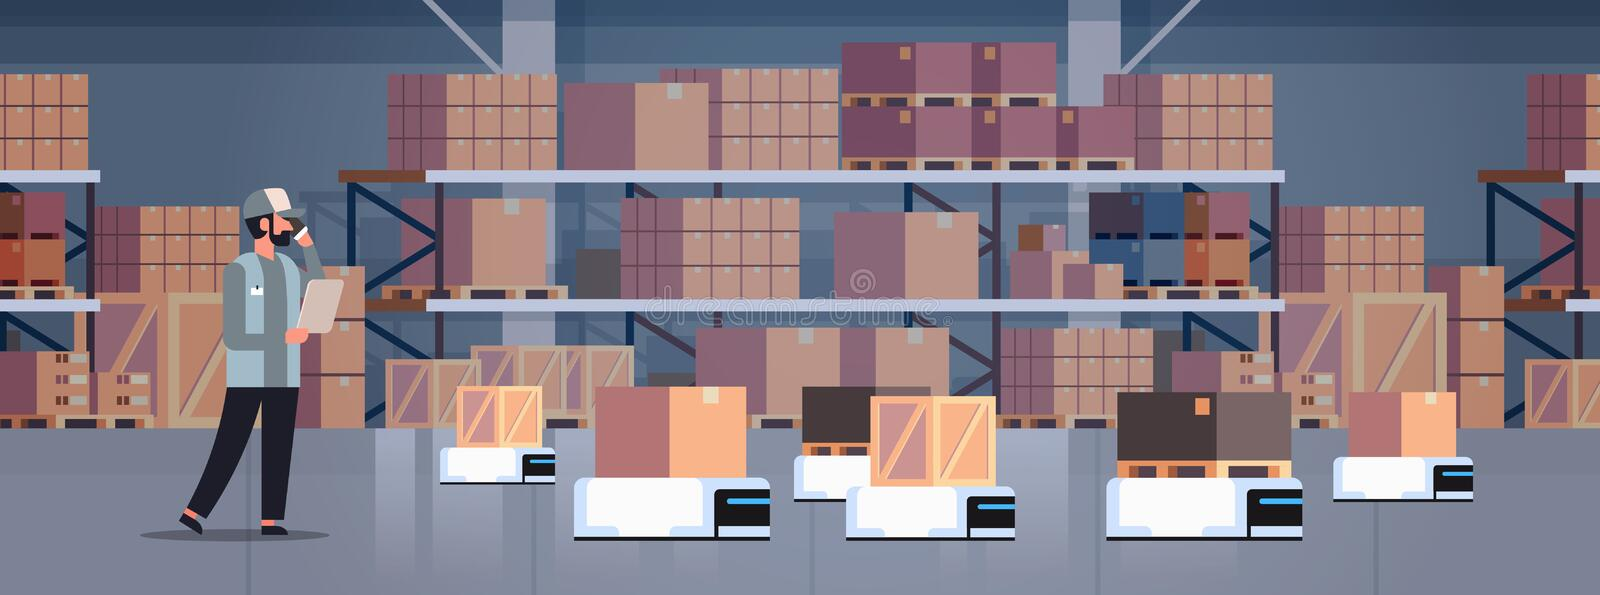 Man engineer controlling robot car delivery product factory automation production concept modern warehouse room interior vector illustration